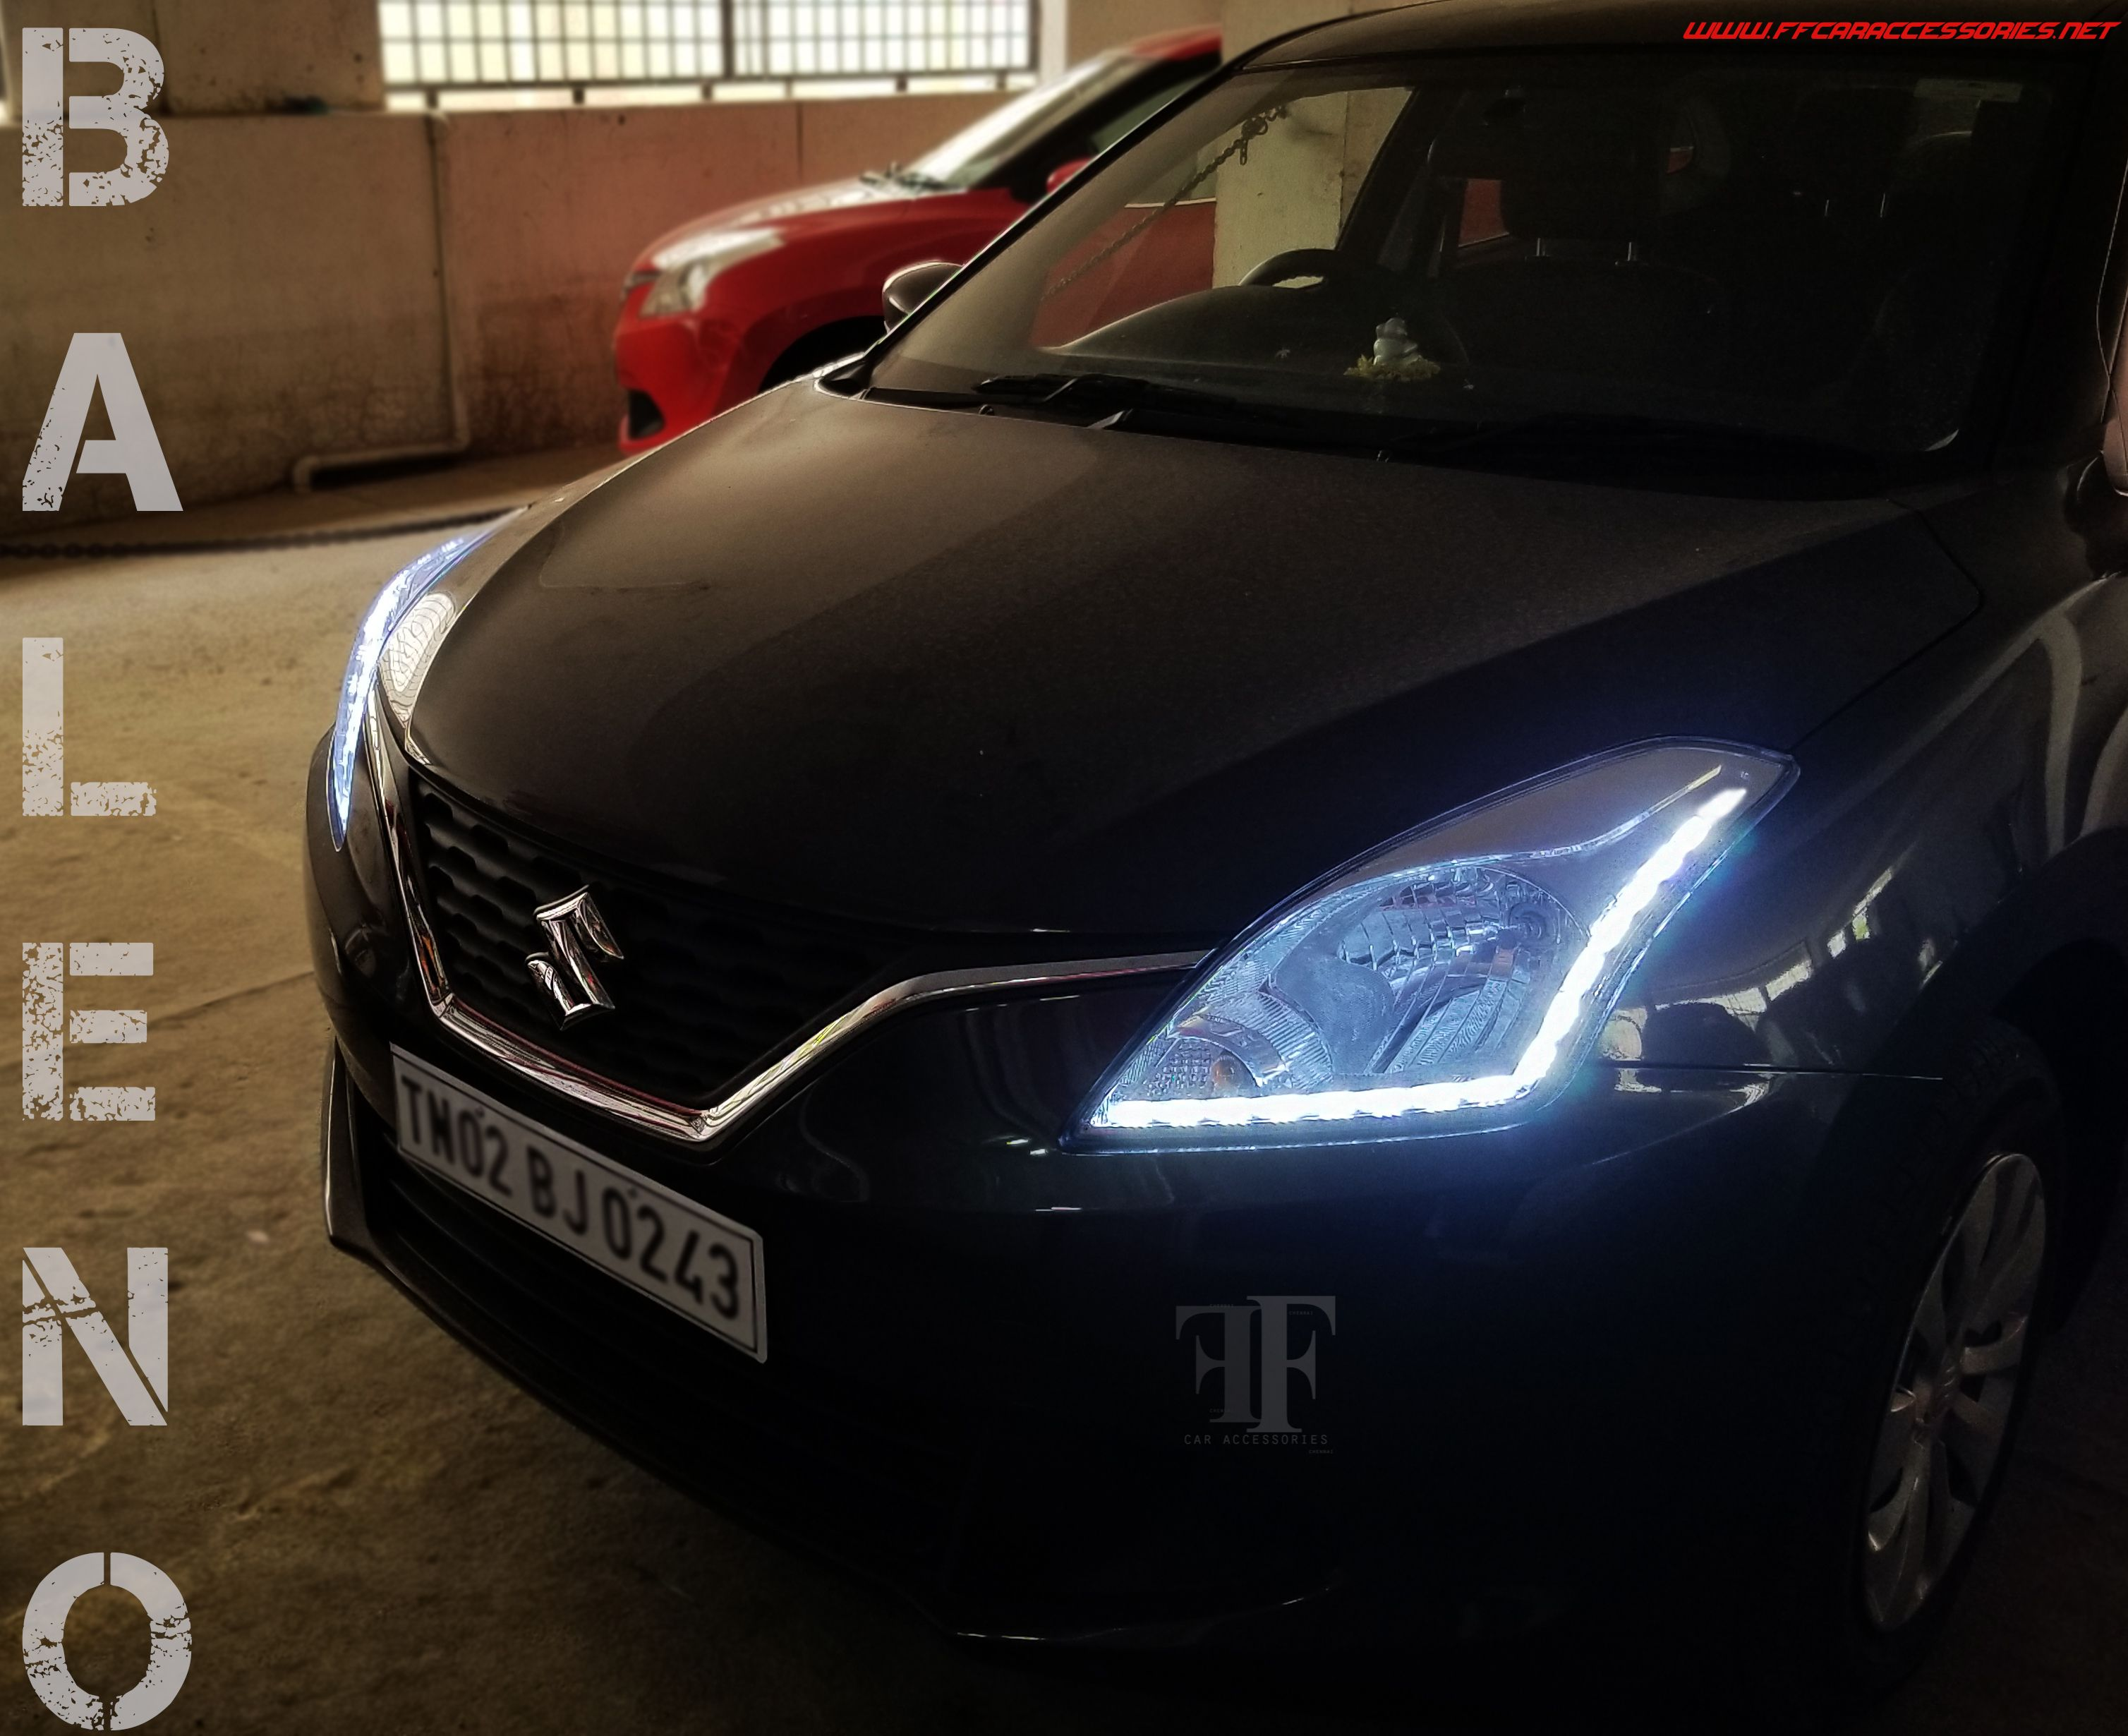 Drl Customised In Head Lamp For Nexa Baleno Day Time Running Durable Peugeot 206 Silver Series Car Body Cover Selimut Mobil Seat Covers Seats